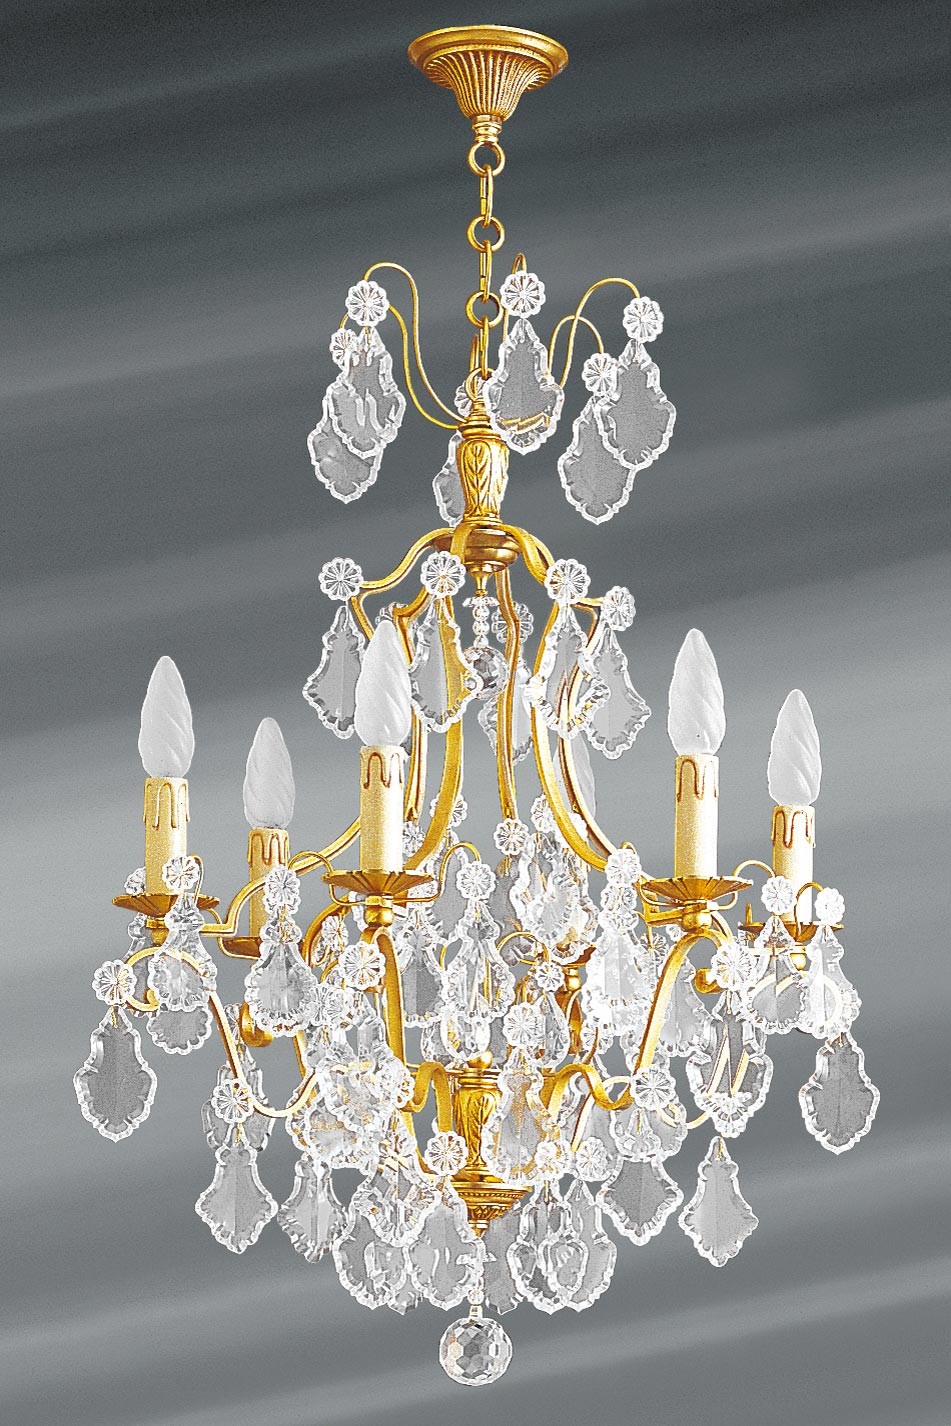 lustre dor cristal de boh me 6 lumi res louis xv lucien gau luminaires classiques de. Black Bedroom Furniture Sets. Home Design Ideas